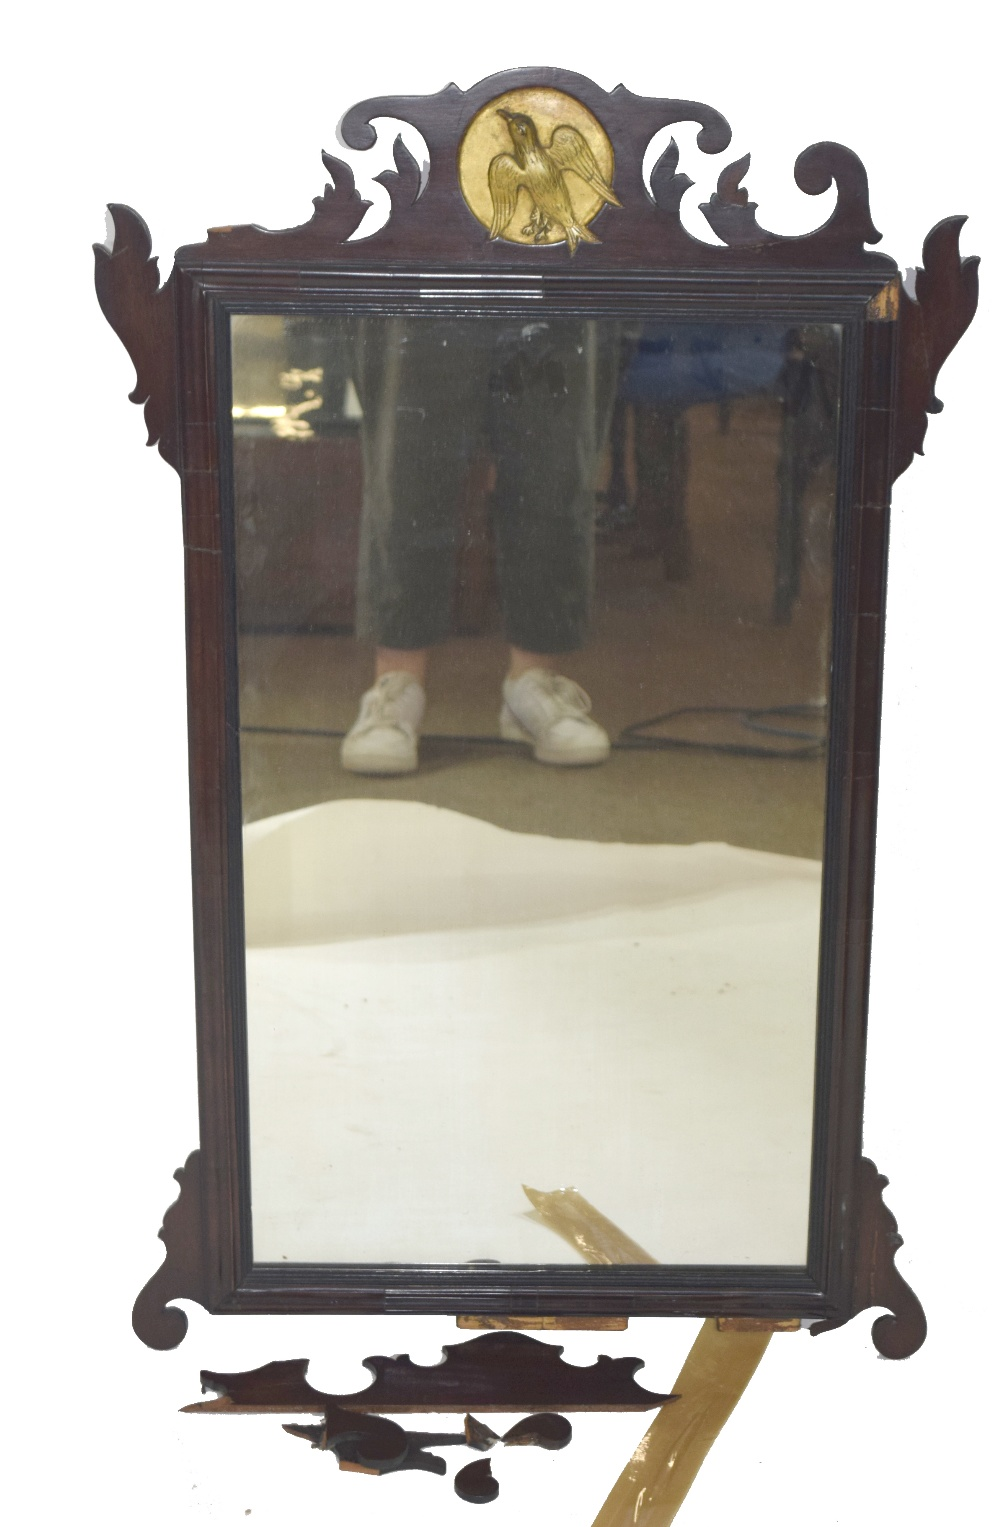 19th century wall mirror in mahogany fret work frame with central gilded roundel detail with bird, - Image 3 of 3